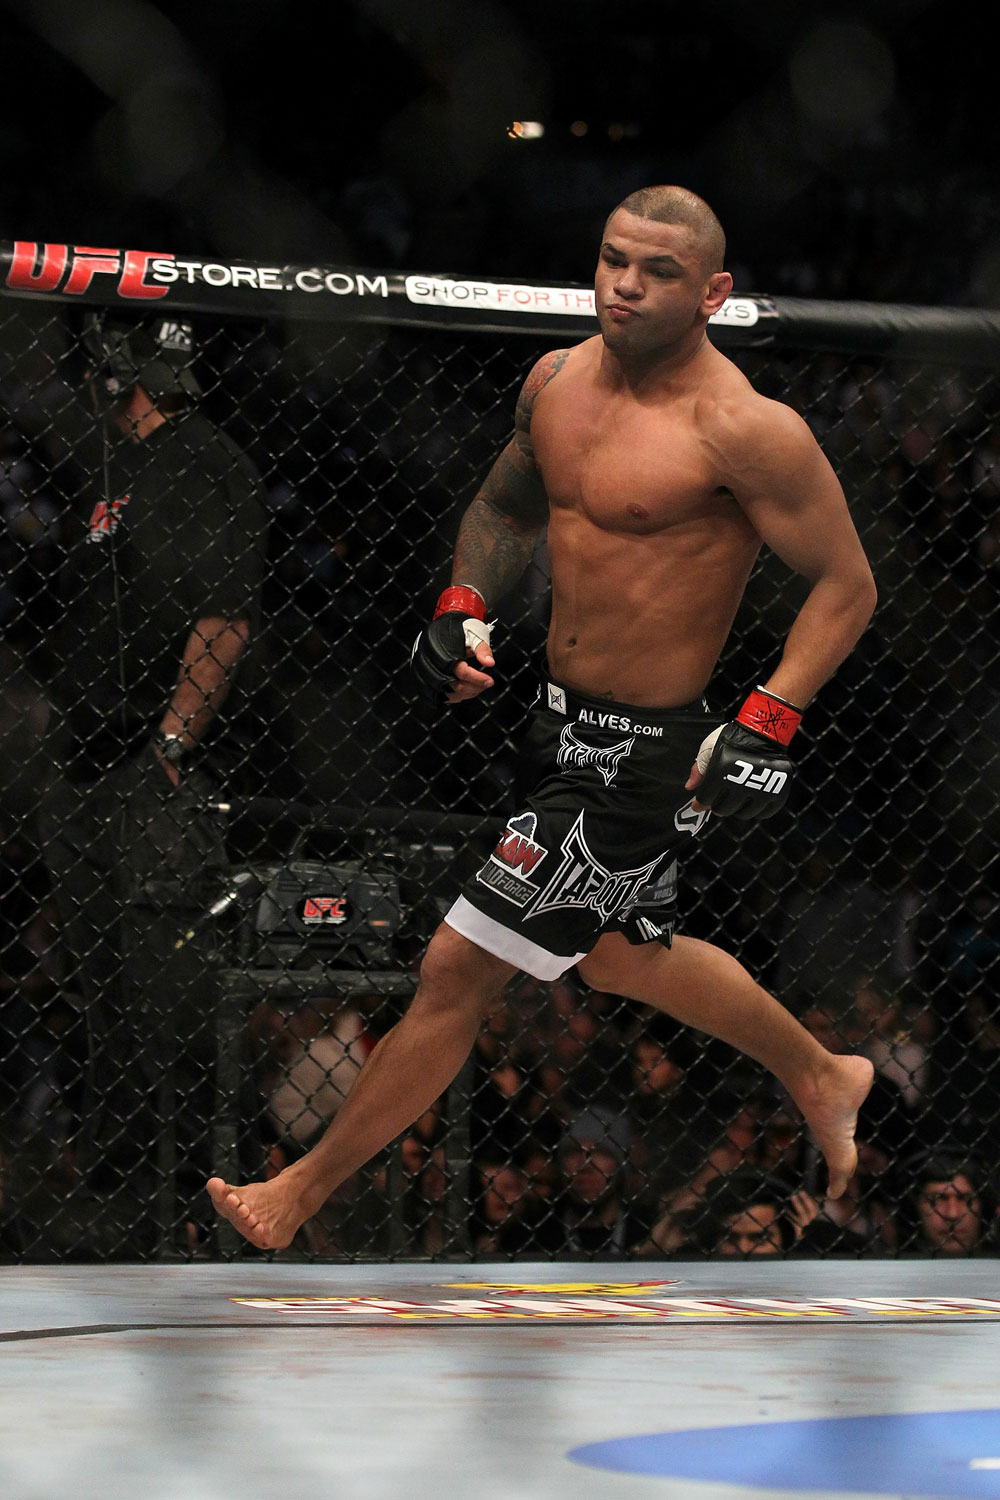 UFC 124: Alves celebrates his win.